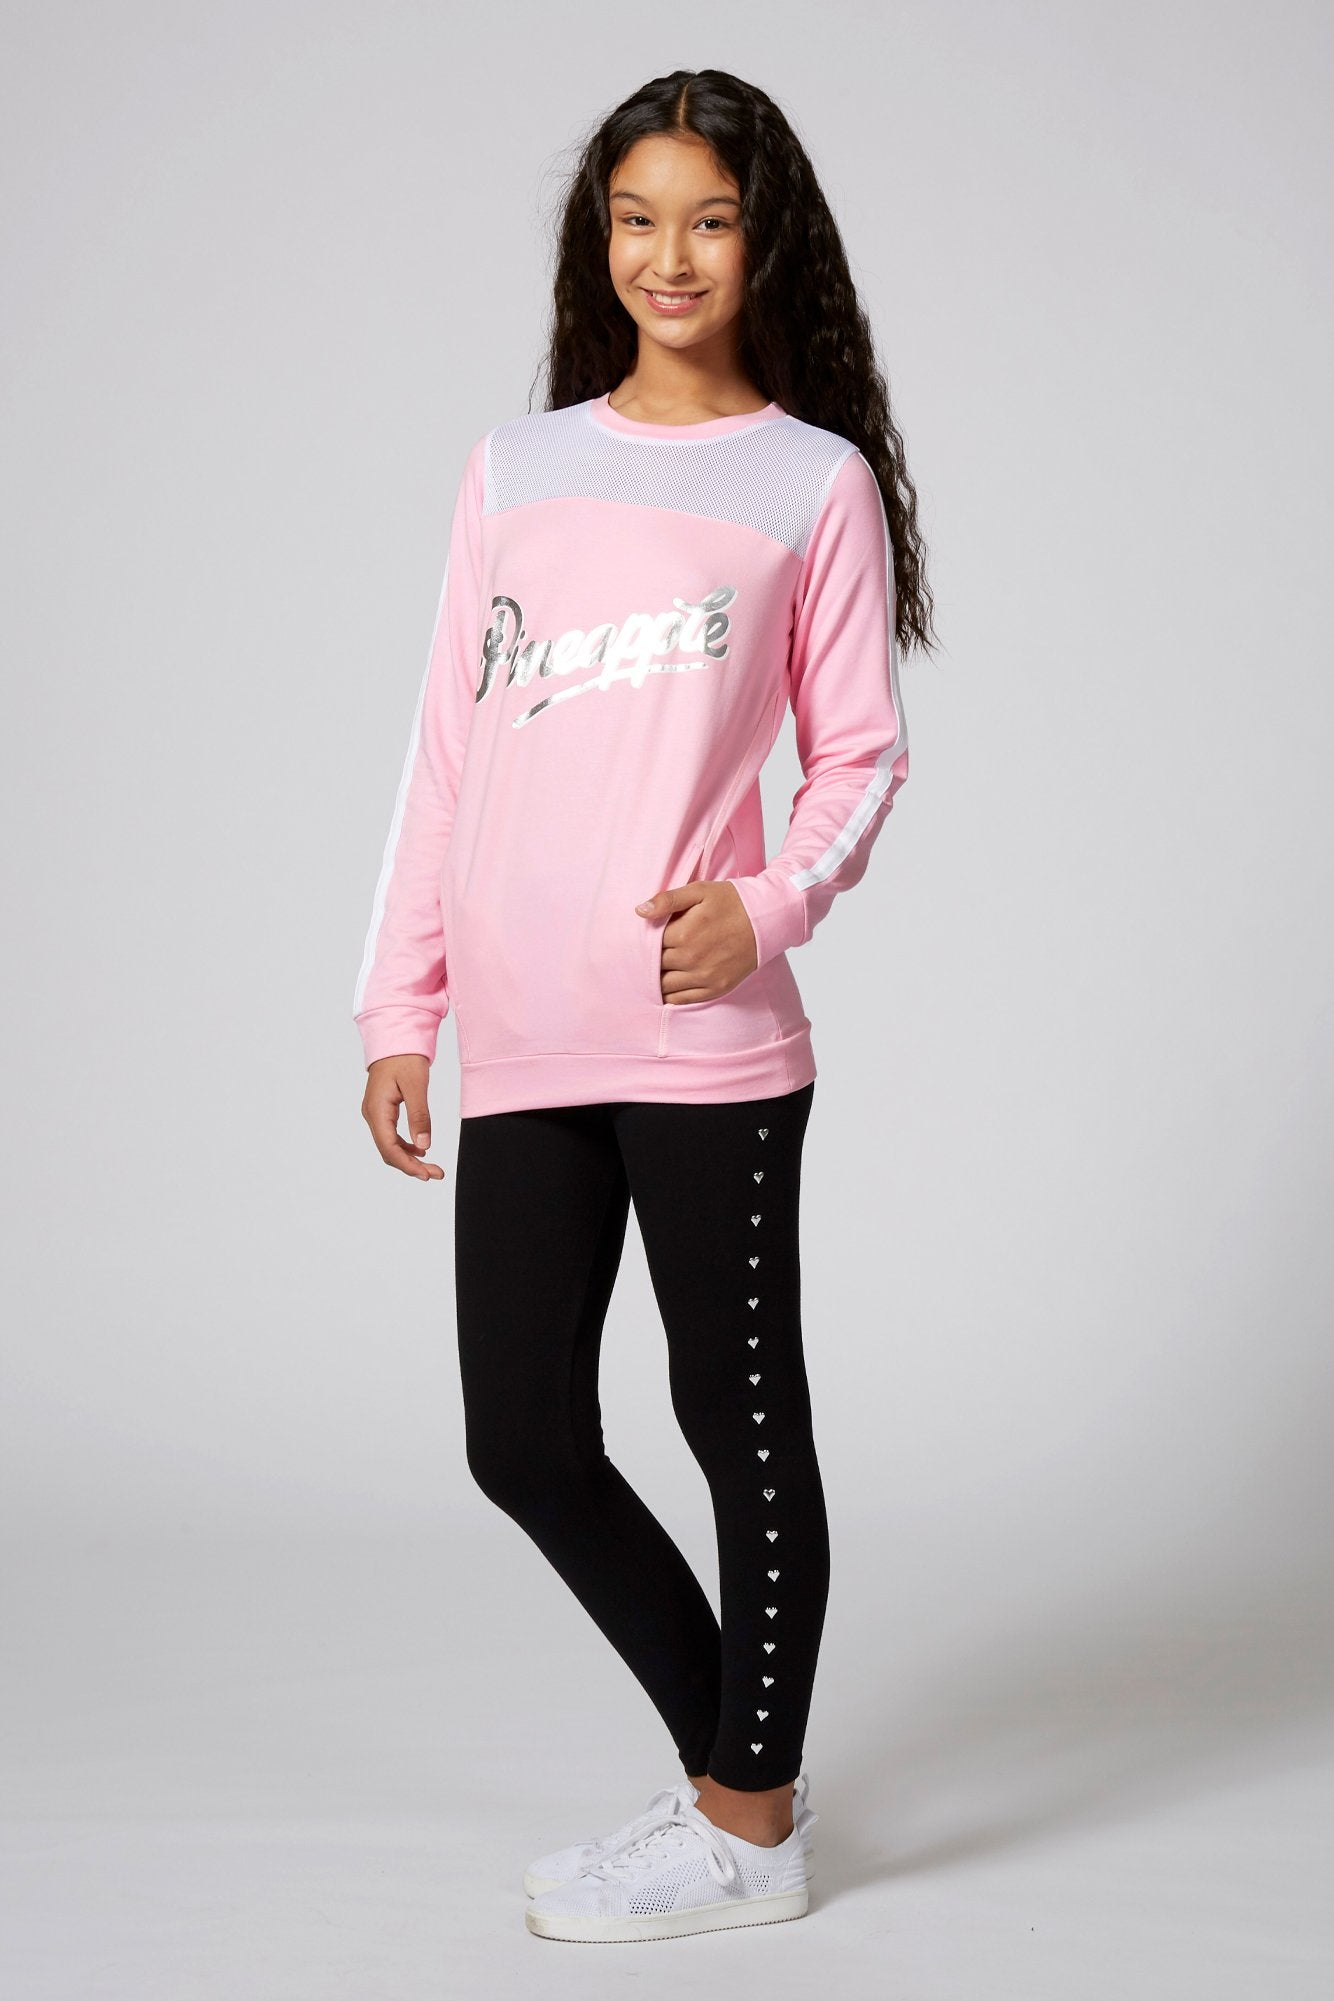 Pineapple Dancewear Girls' Pink Stripe Monster Sweat Top